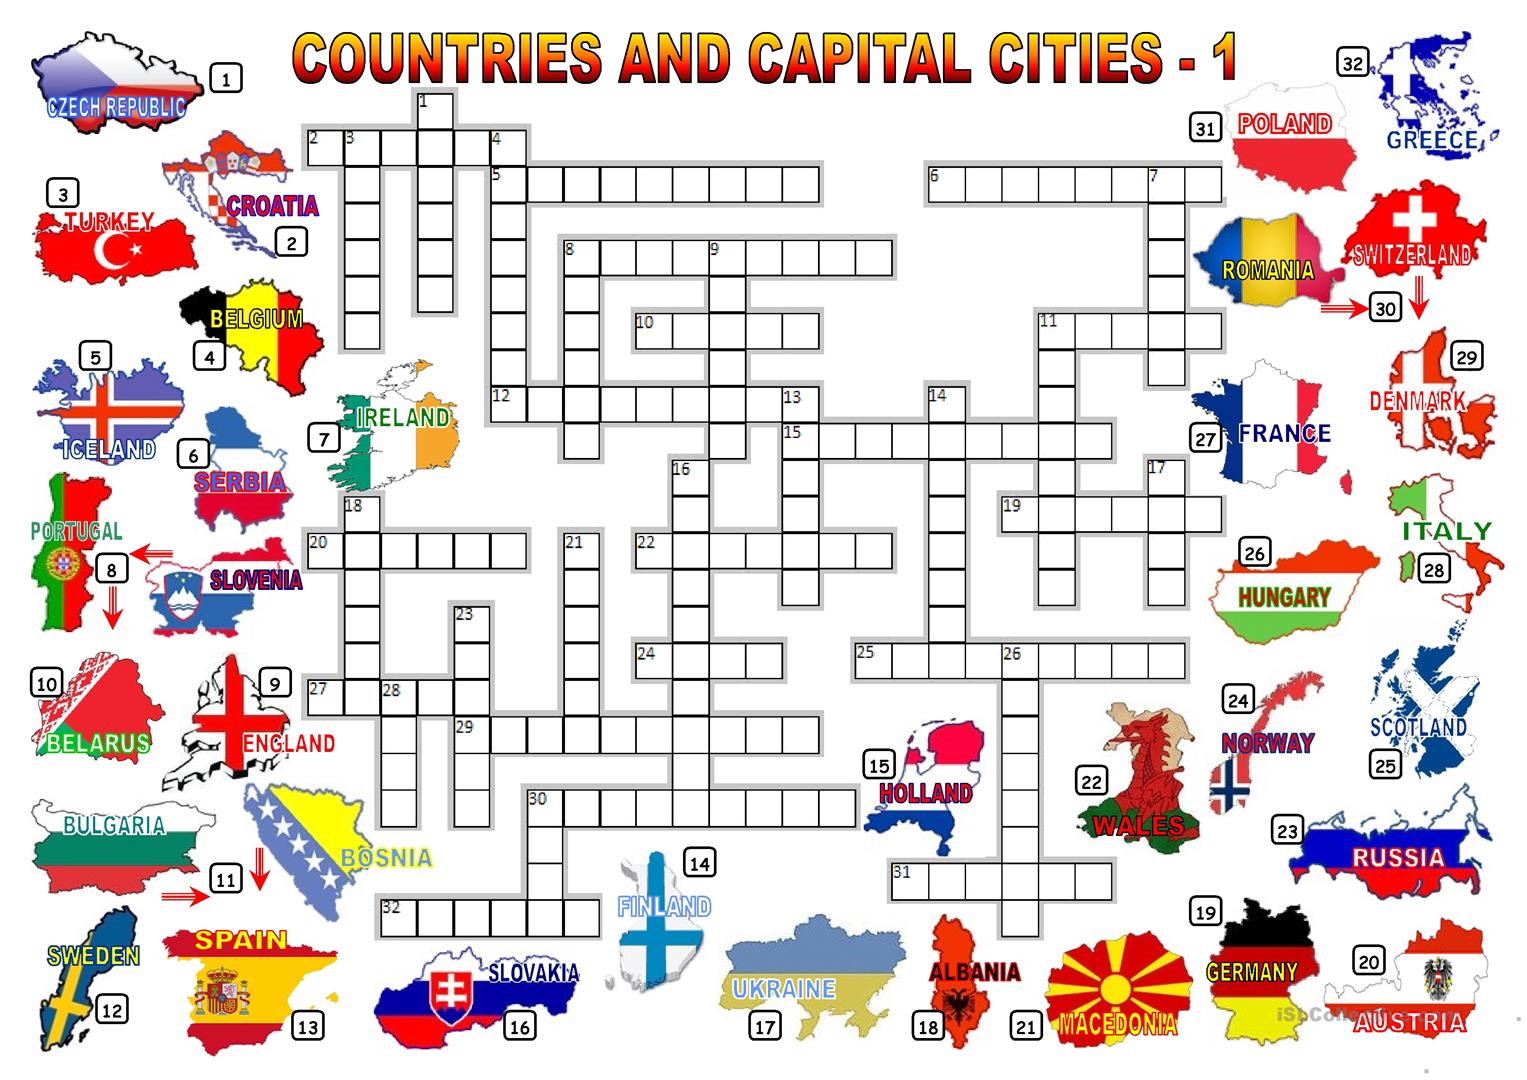 CAPITAL CITIES OF COUNTRIES PDF